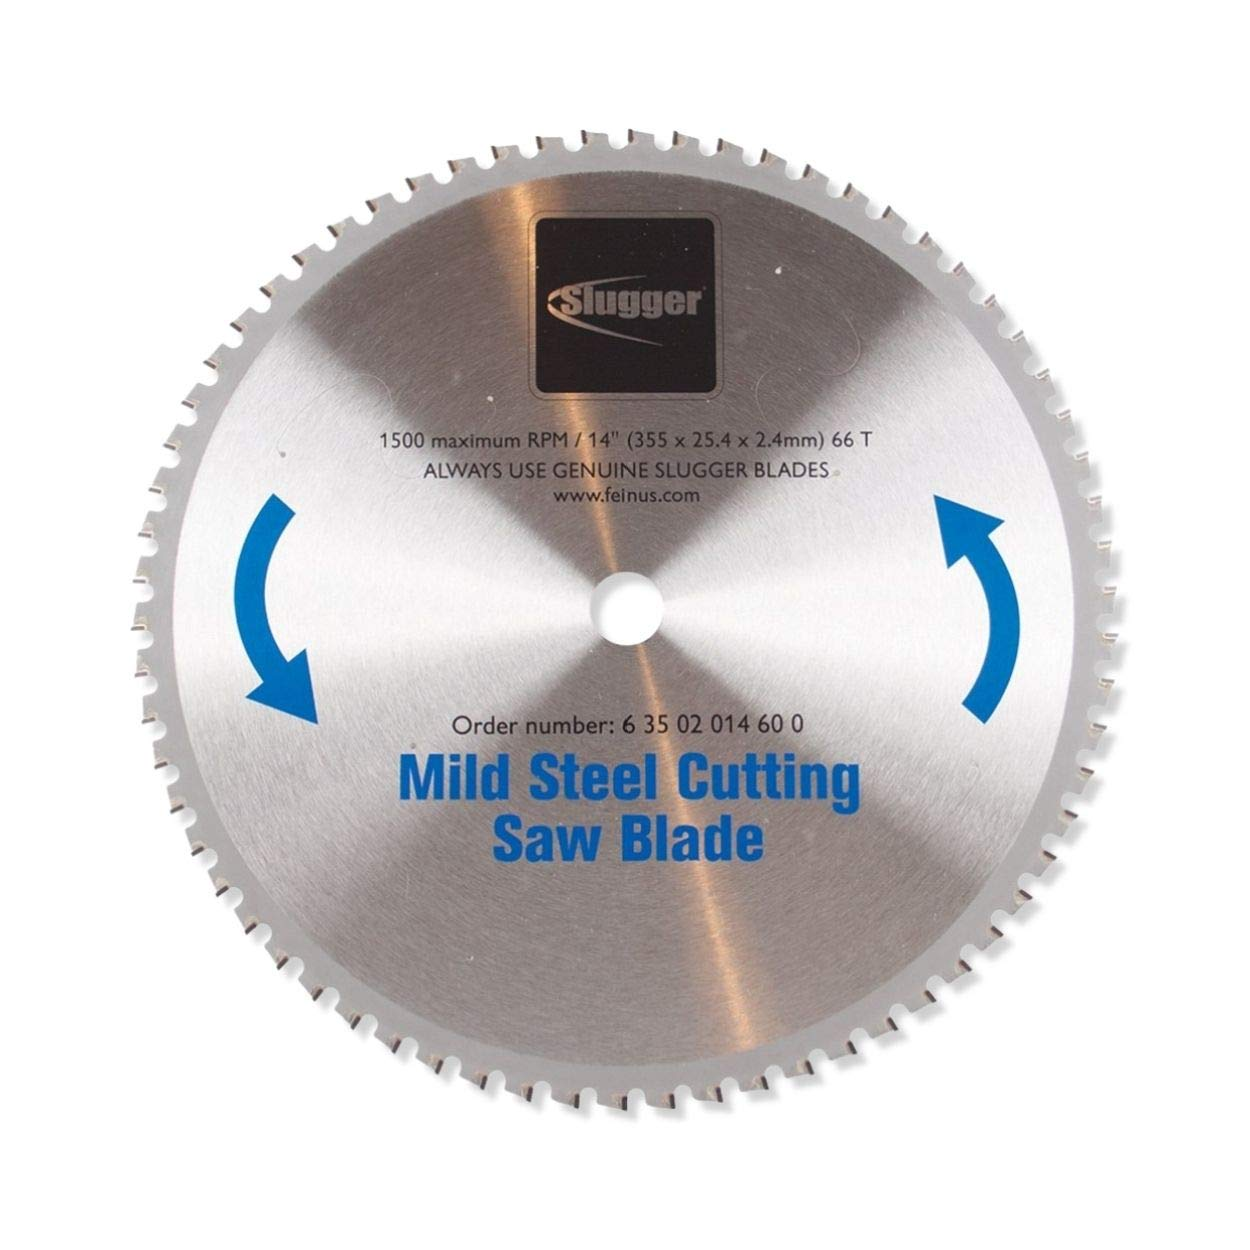 Jancy Slugger by Fein - Steel Blade Cutting Saw Mild for Thin Baltimore Mall High order